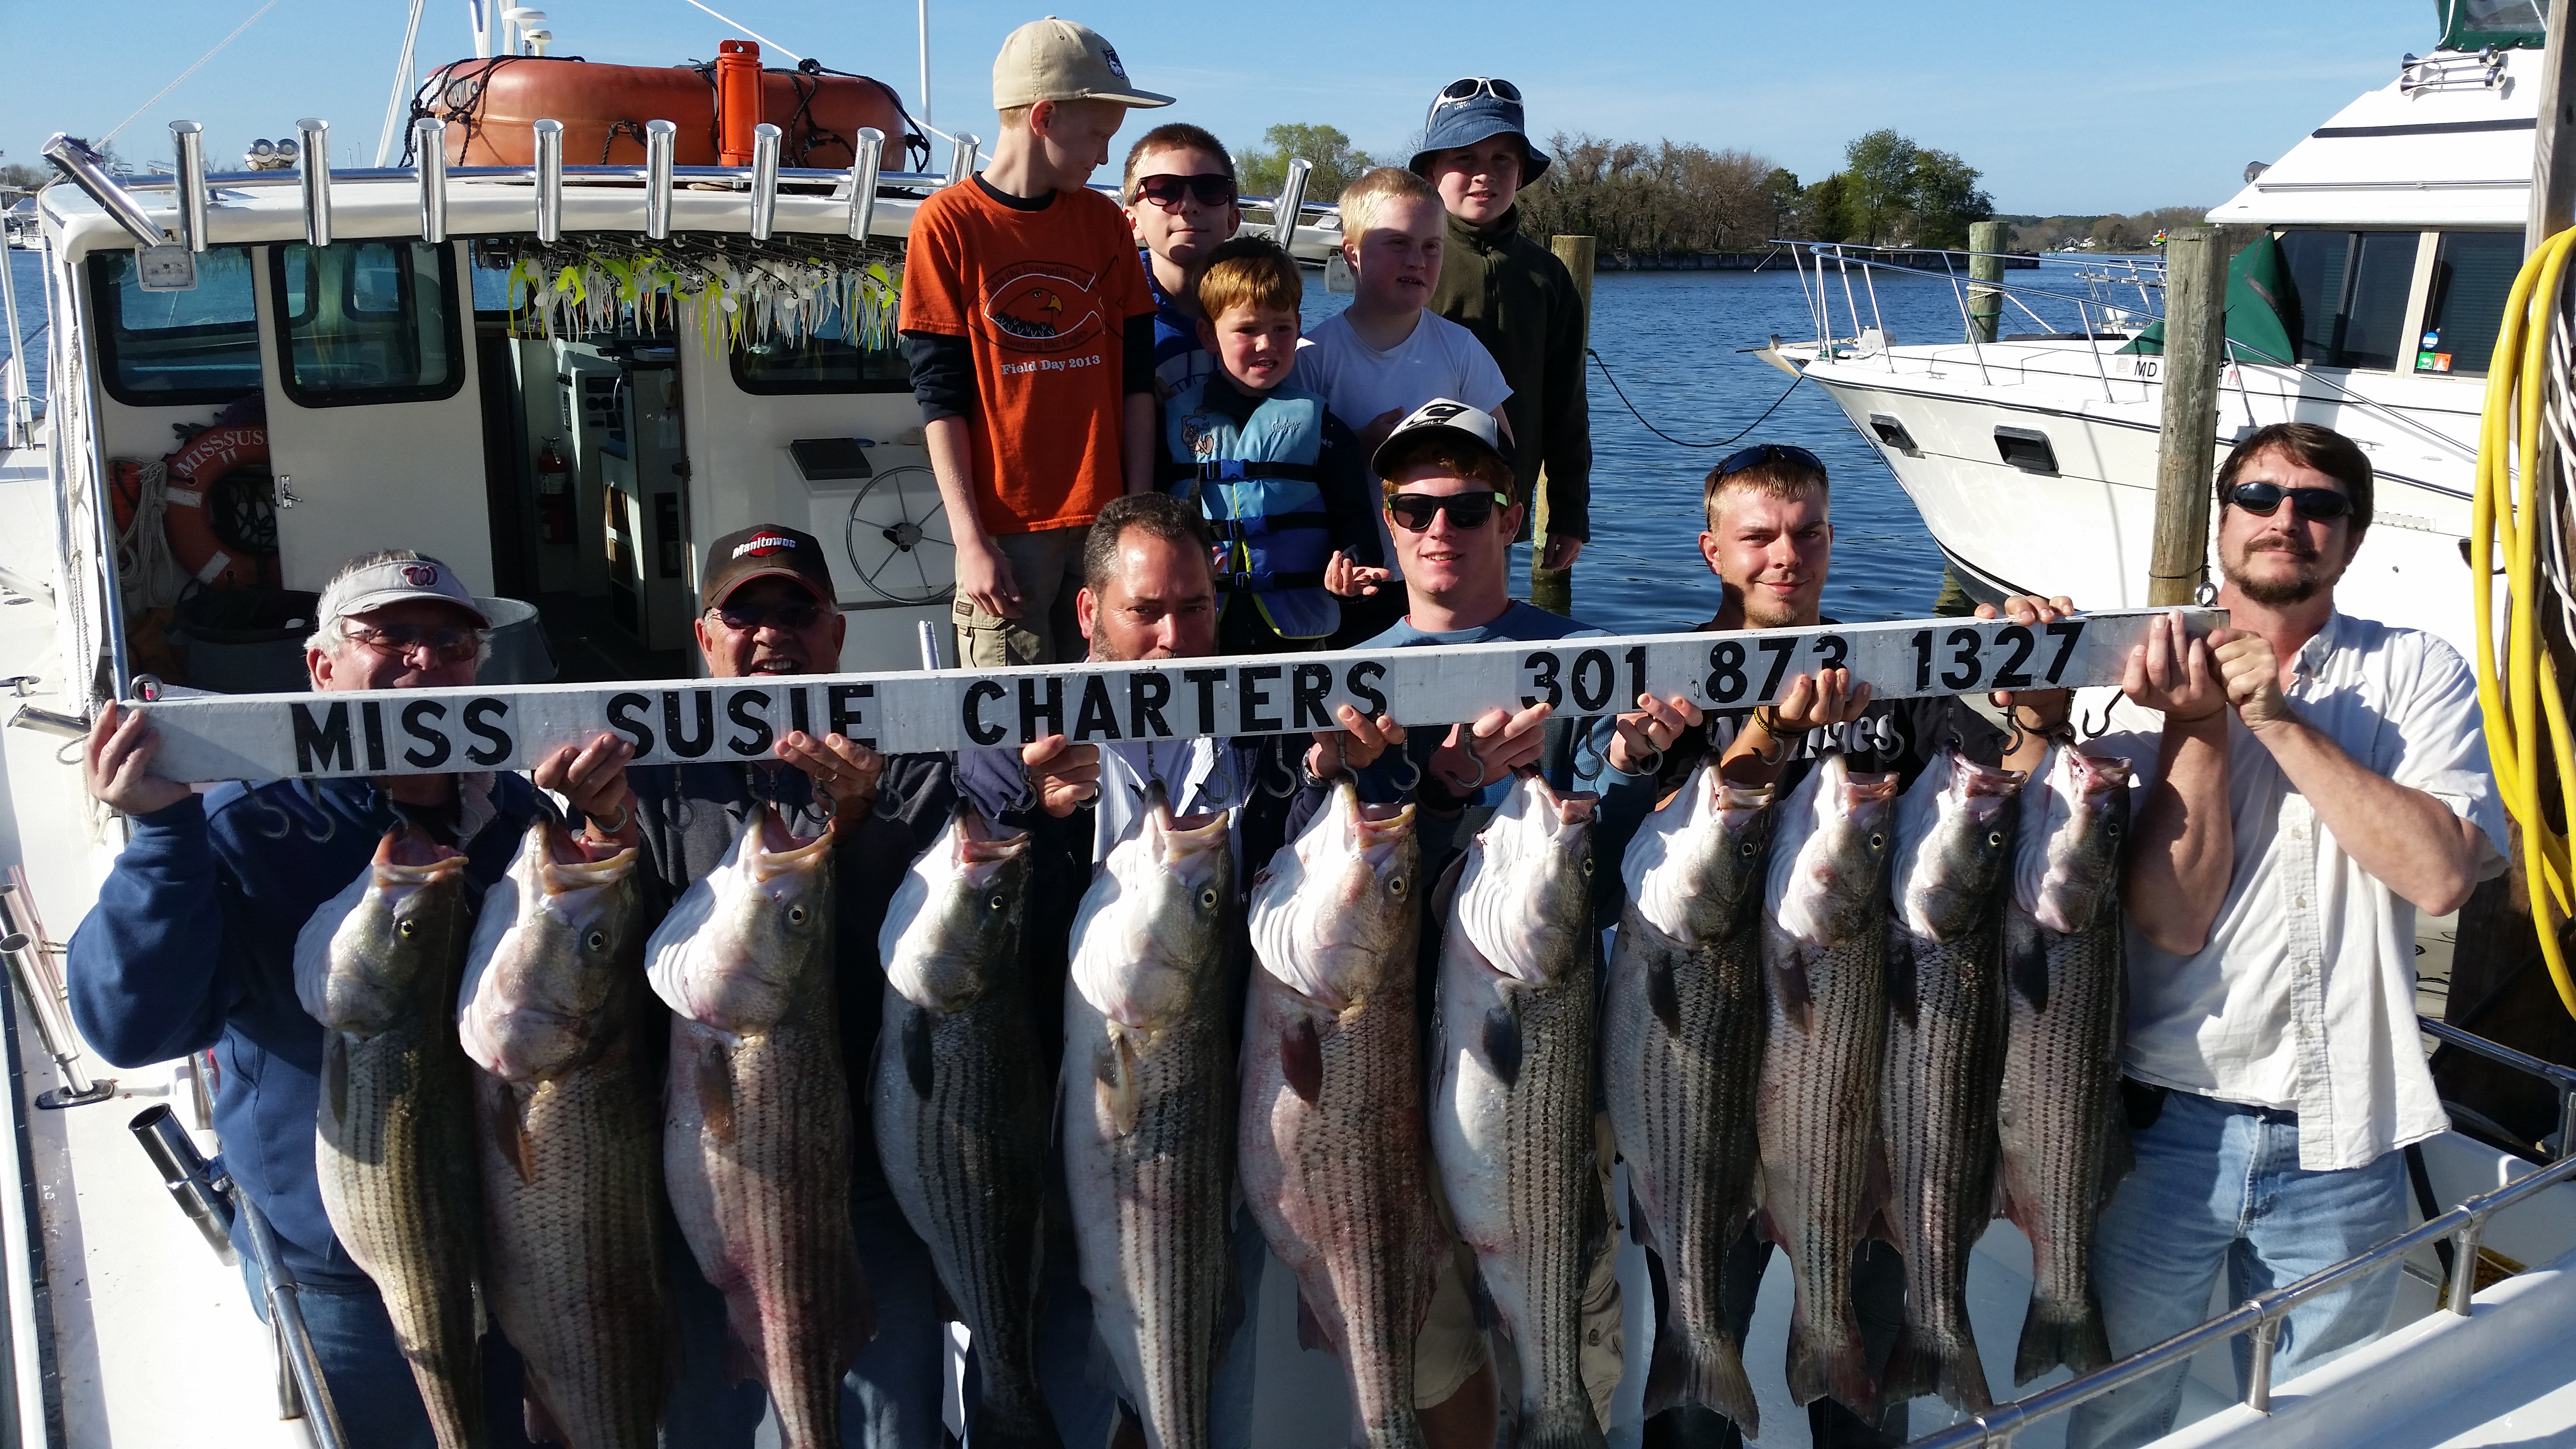 Sport fishing charters light tackle fishing in deale md for Deale md fishing charters